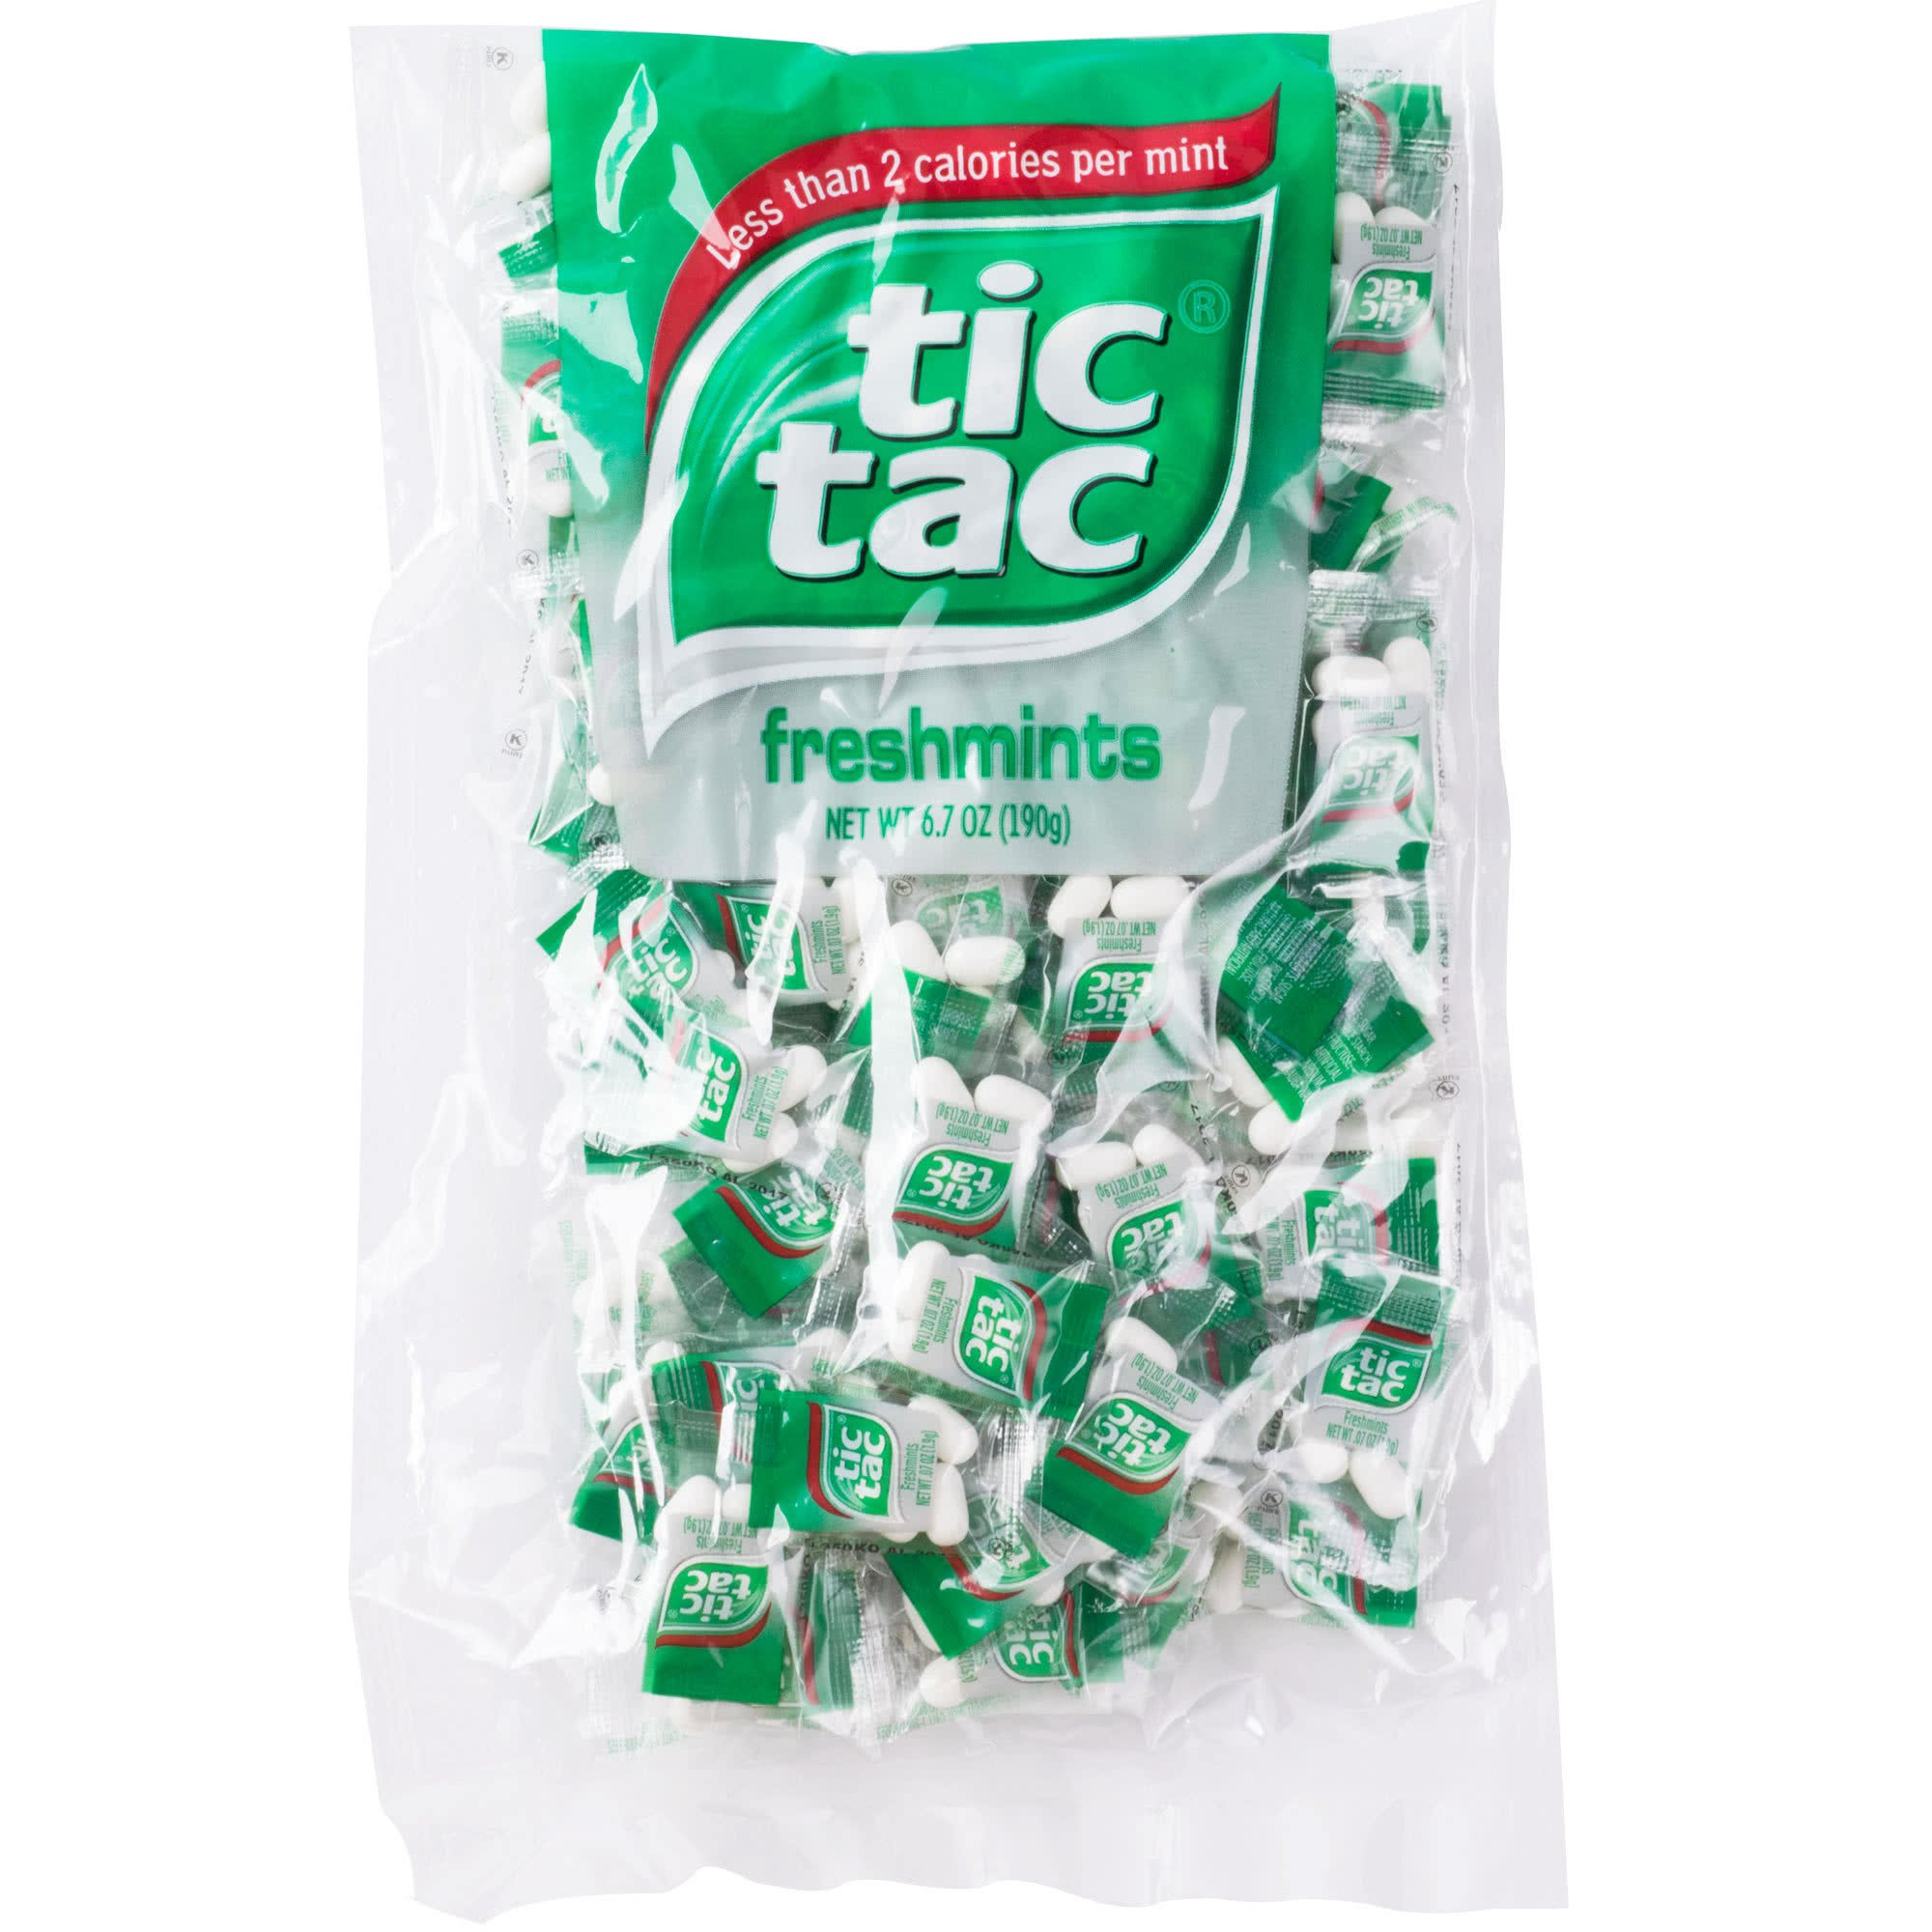 tic tac Freshmint Pillow Pack, 100 Count bag (Pack of 3) 300 individually wrapped packs of 4 mints each by Tic Tac